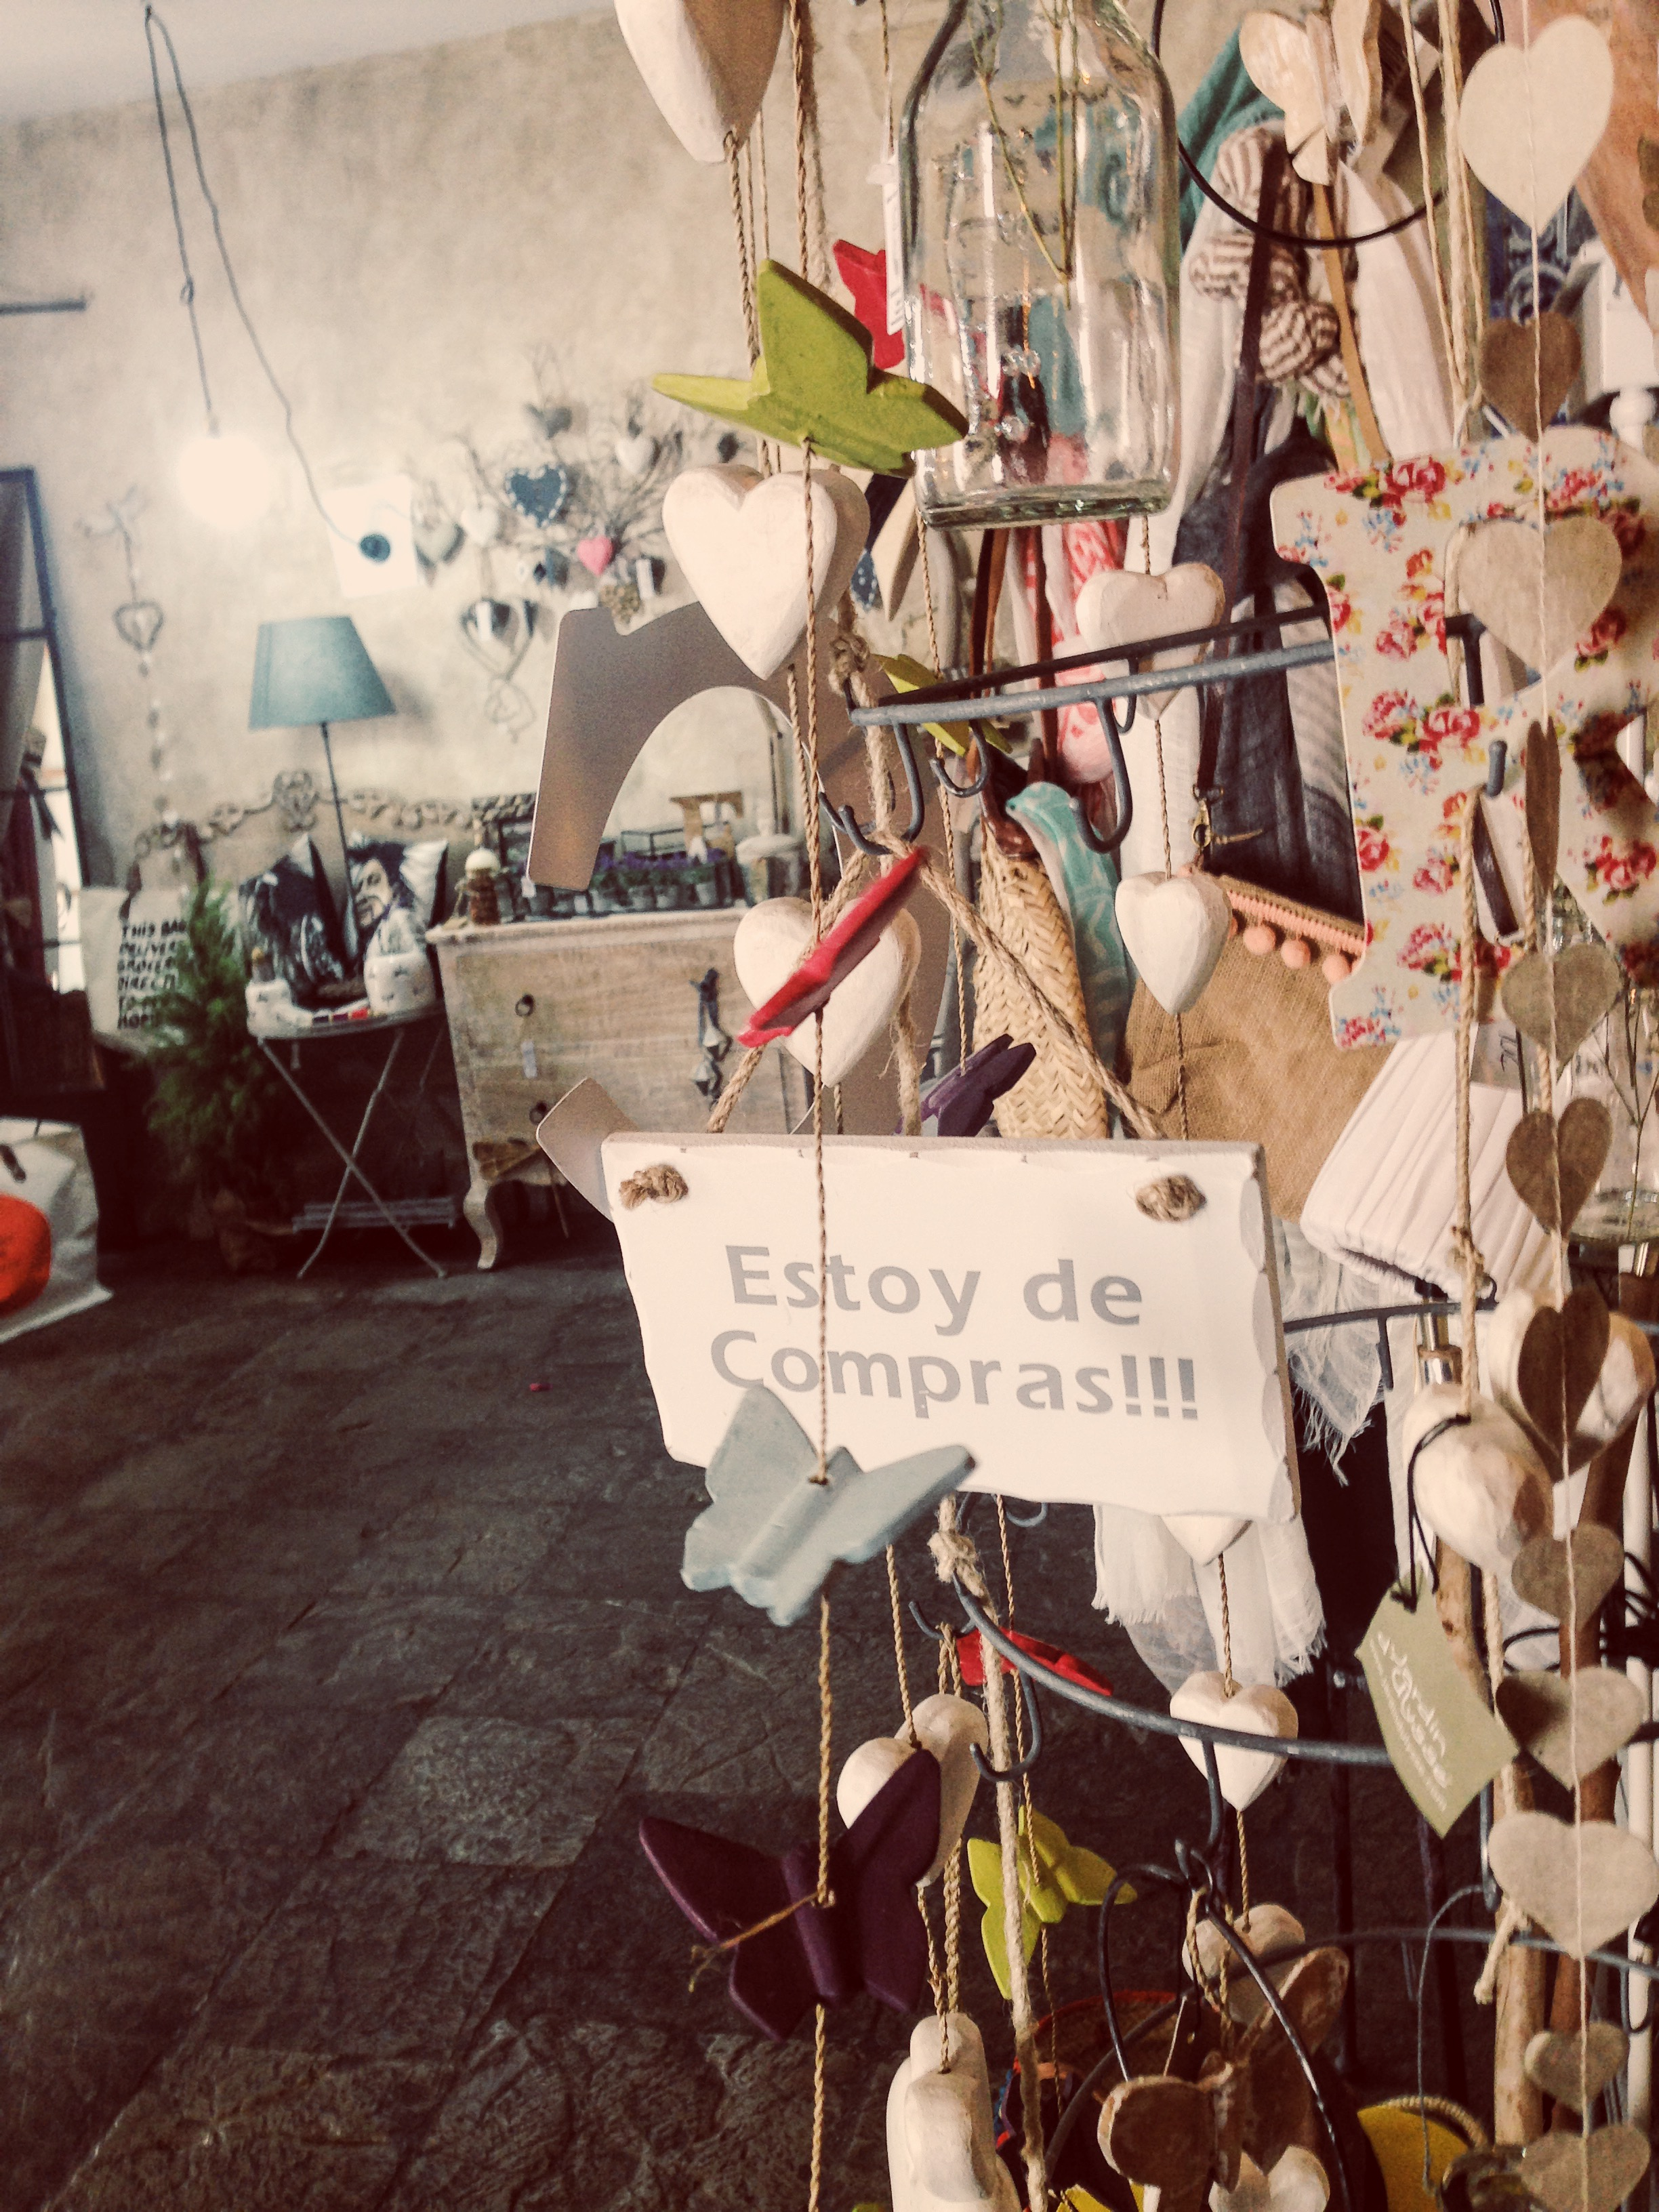 A ton of artsy stores selling handmade goodies, from locally sourced products